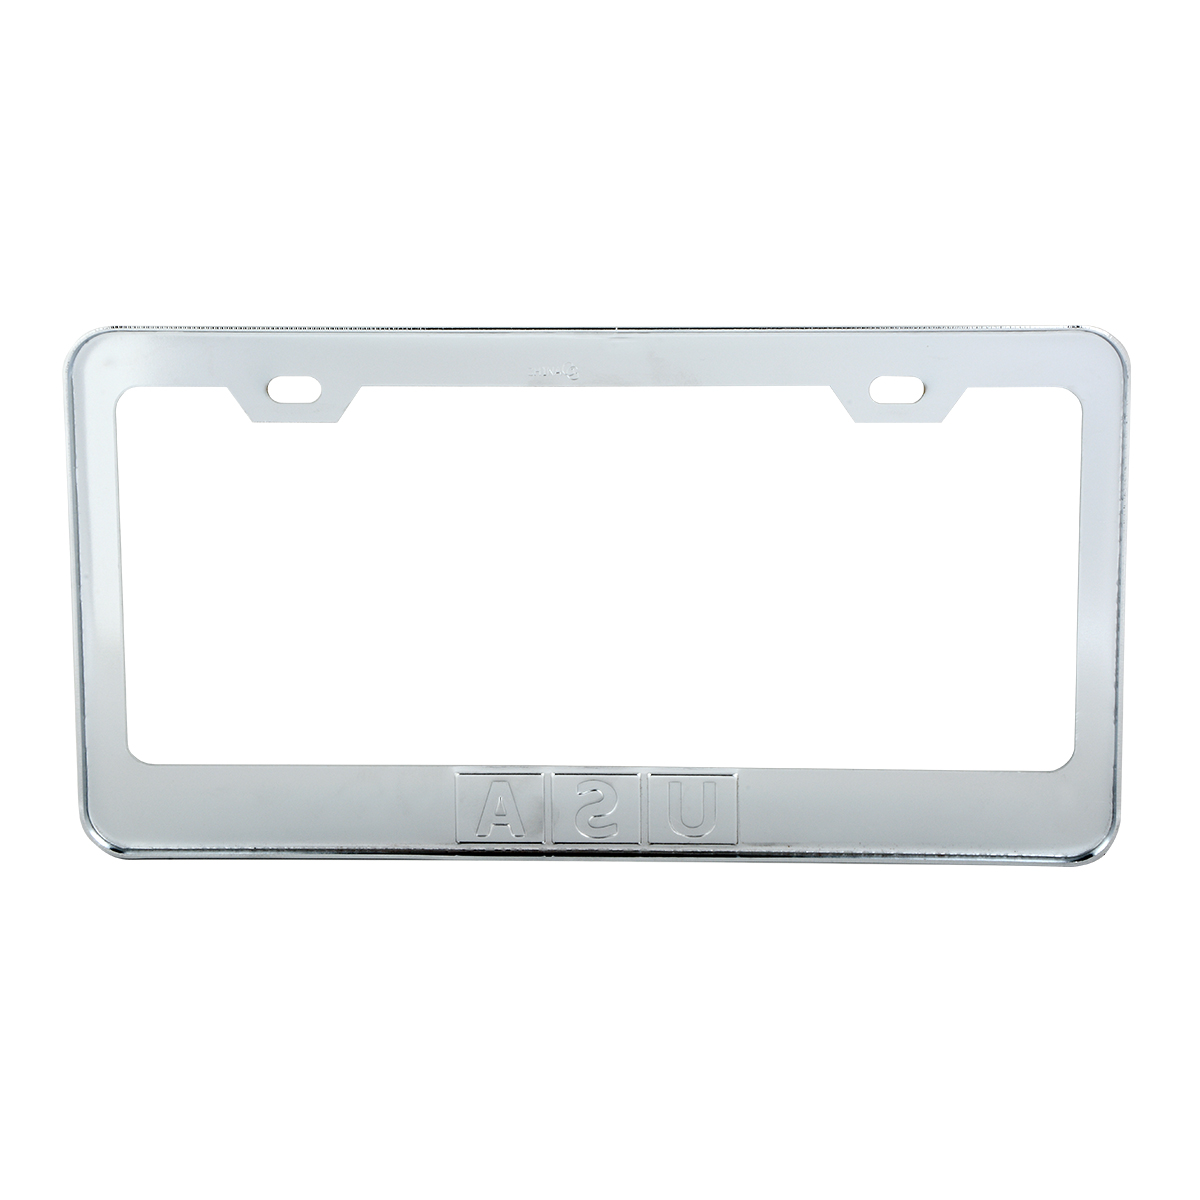 Chrome Plated Steel USA License Plate Frame - Back View